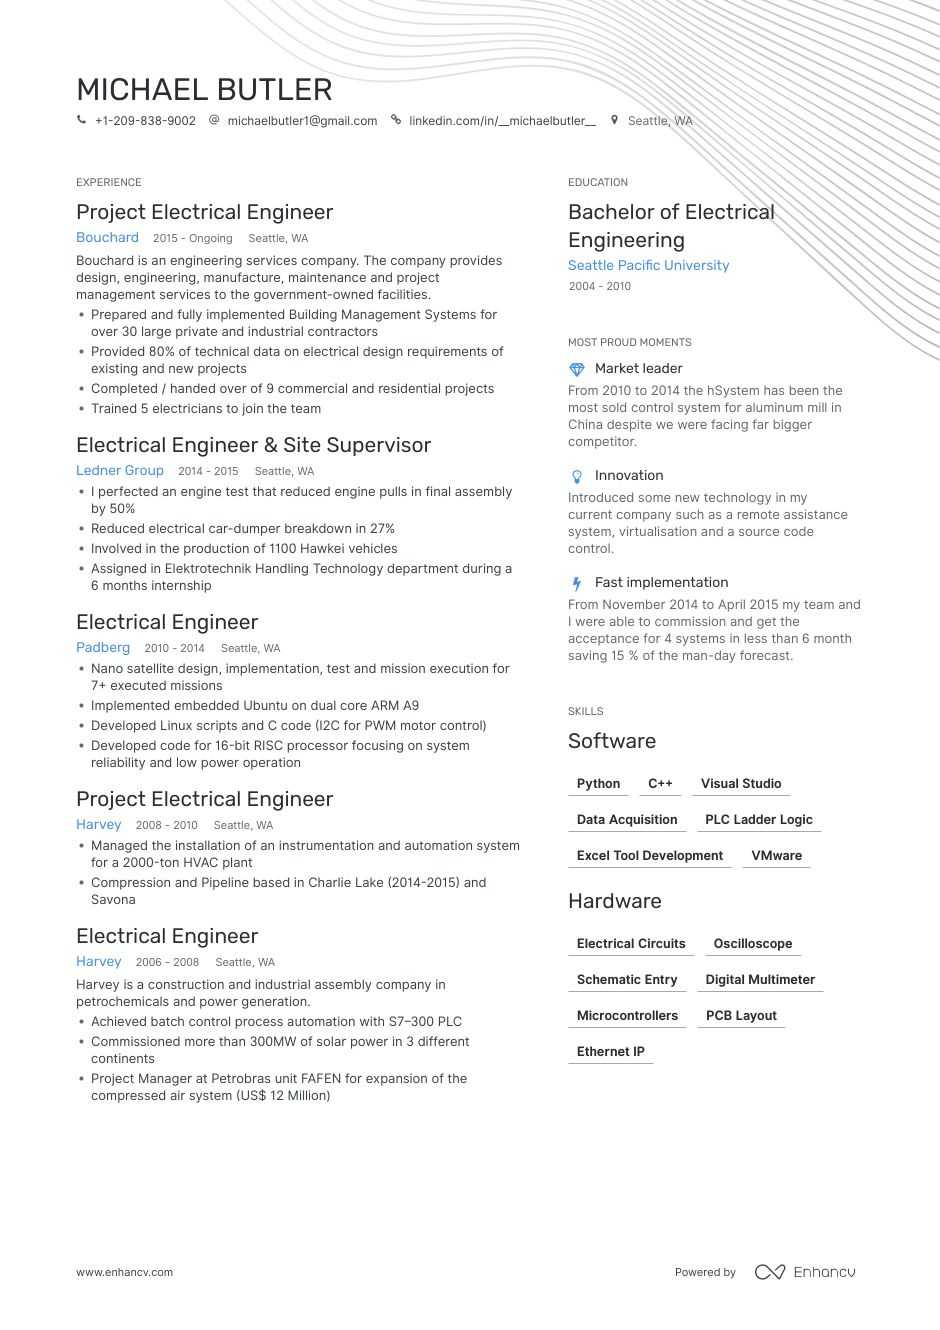 electrical engineer resume examples pro tips featured enhancv sample professional Resume Sample Professional Engineer Resume